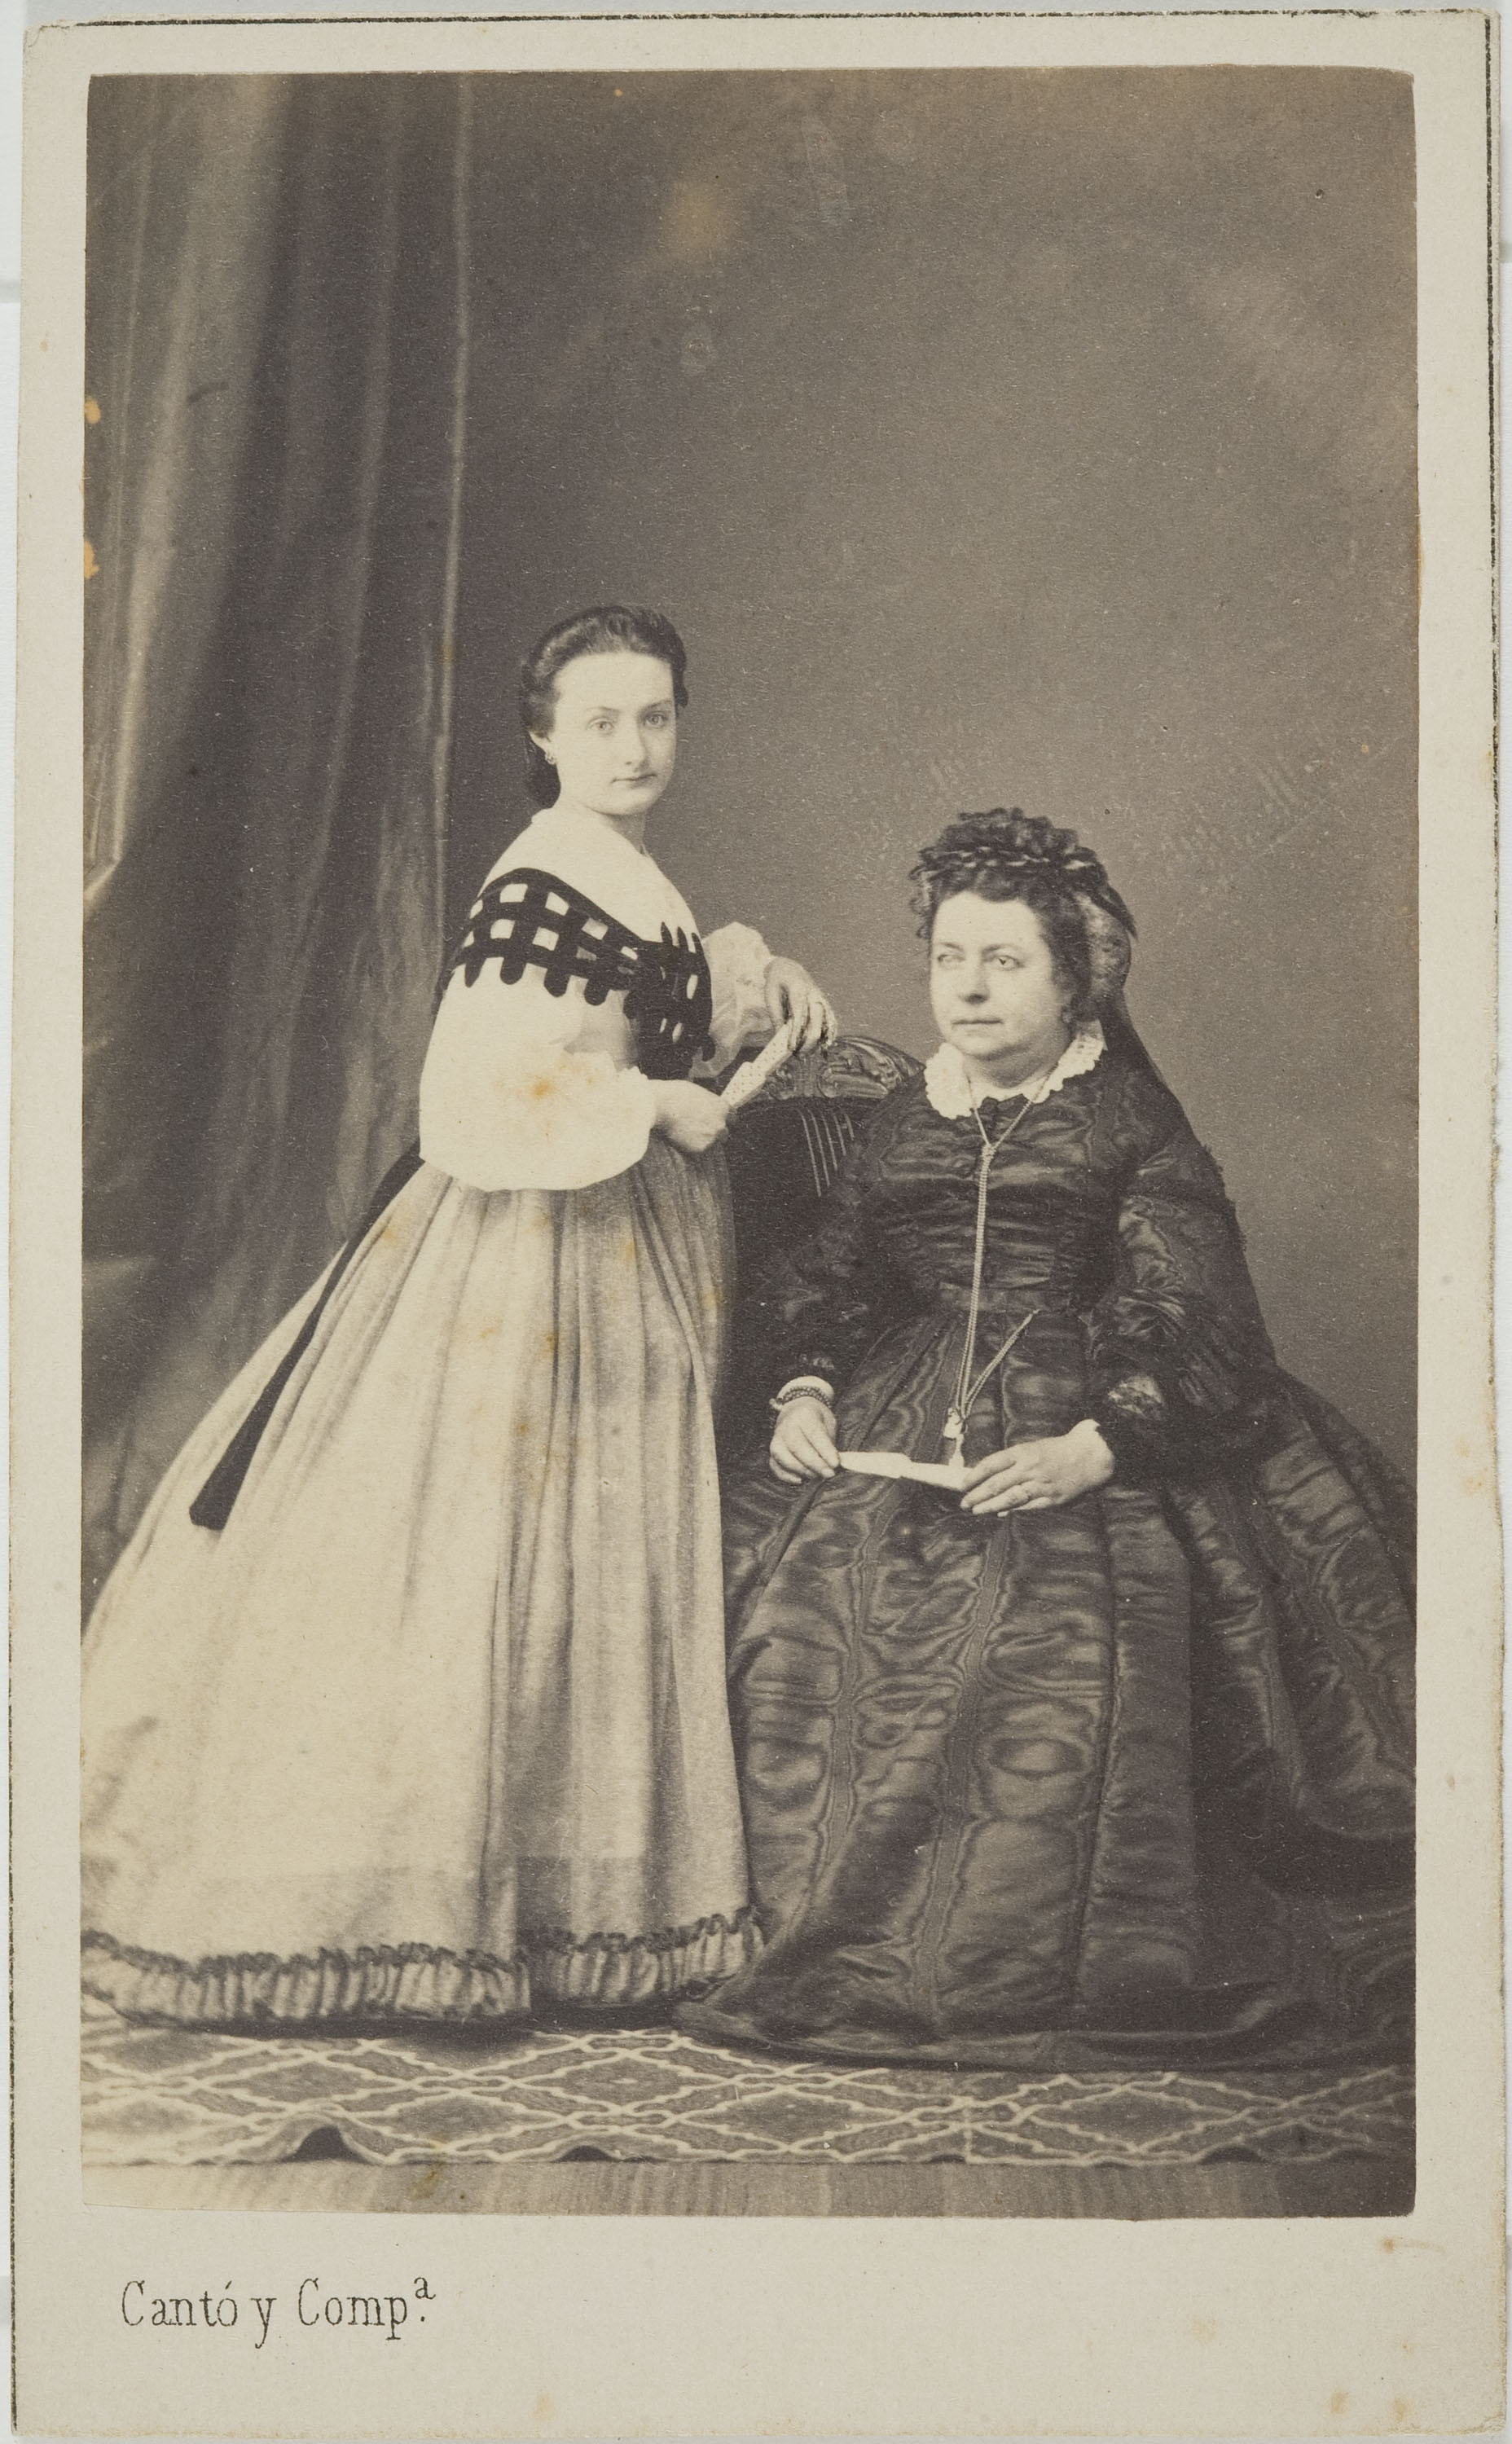 Cantó y Cía. Barcelona - Portrait of two women - Circa 1860